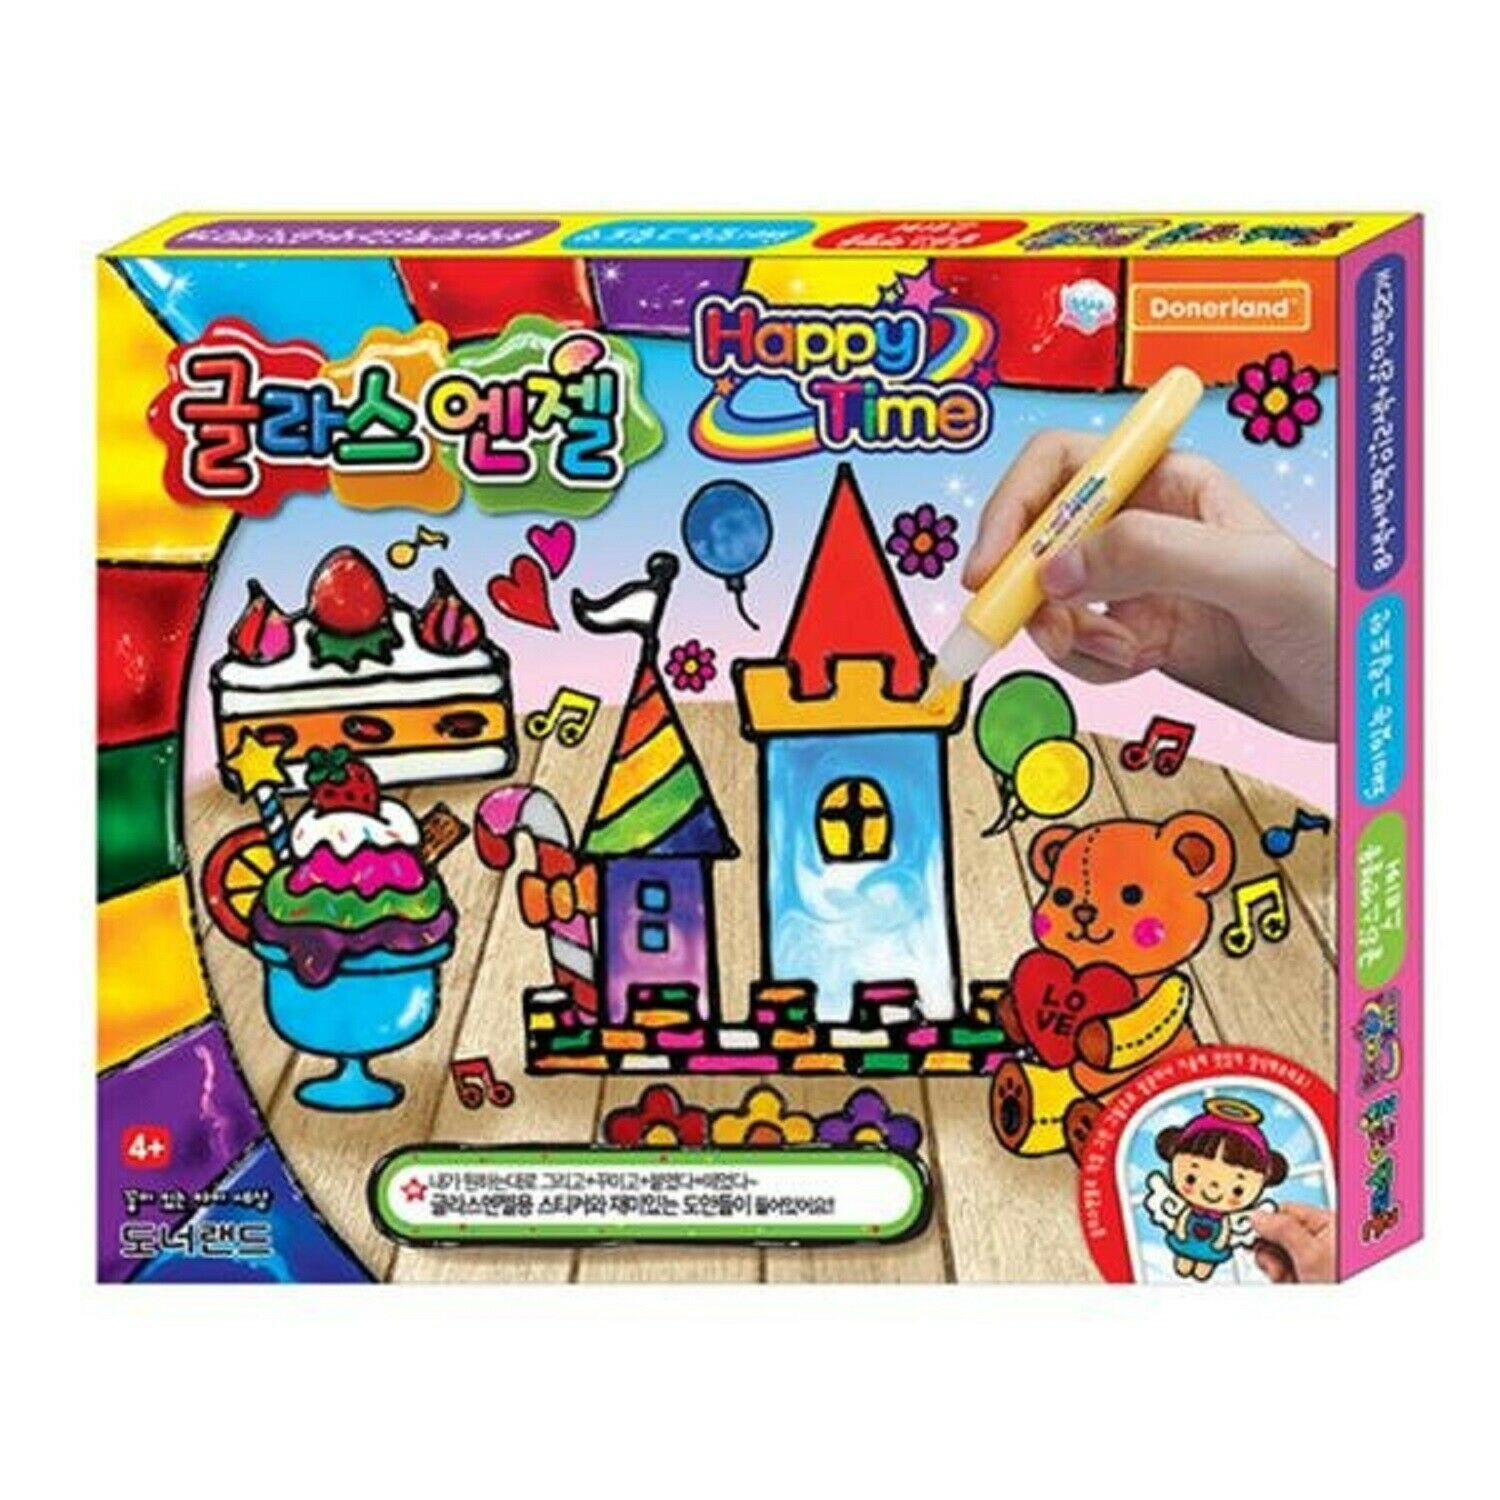 Donerland Glass Angel Happy Time Peelable Paint Sticker Pen with Base Sketch Toy